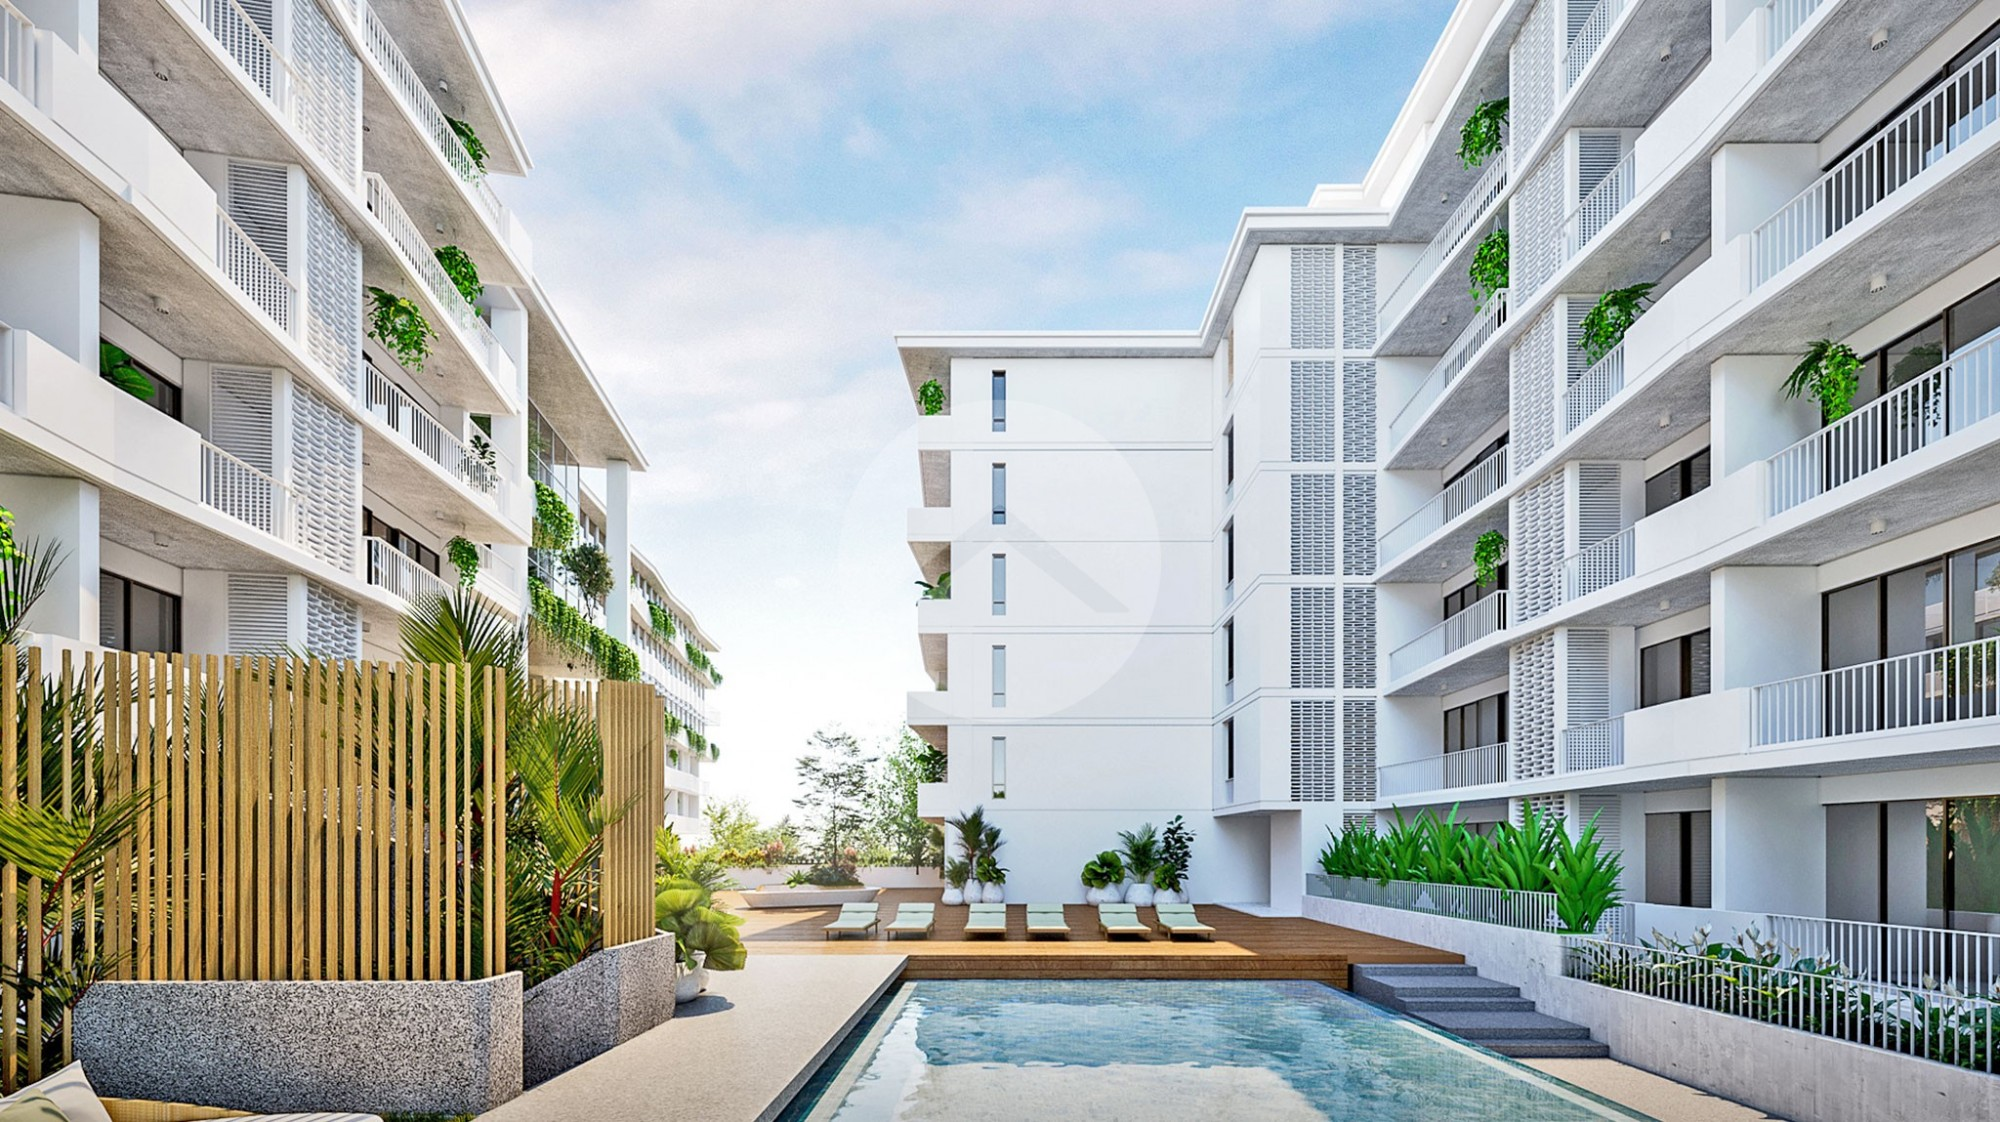 1 Bedroom Condo For Sale - Rose Apple Square, Downtown Siem Reap